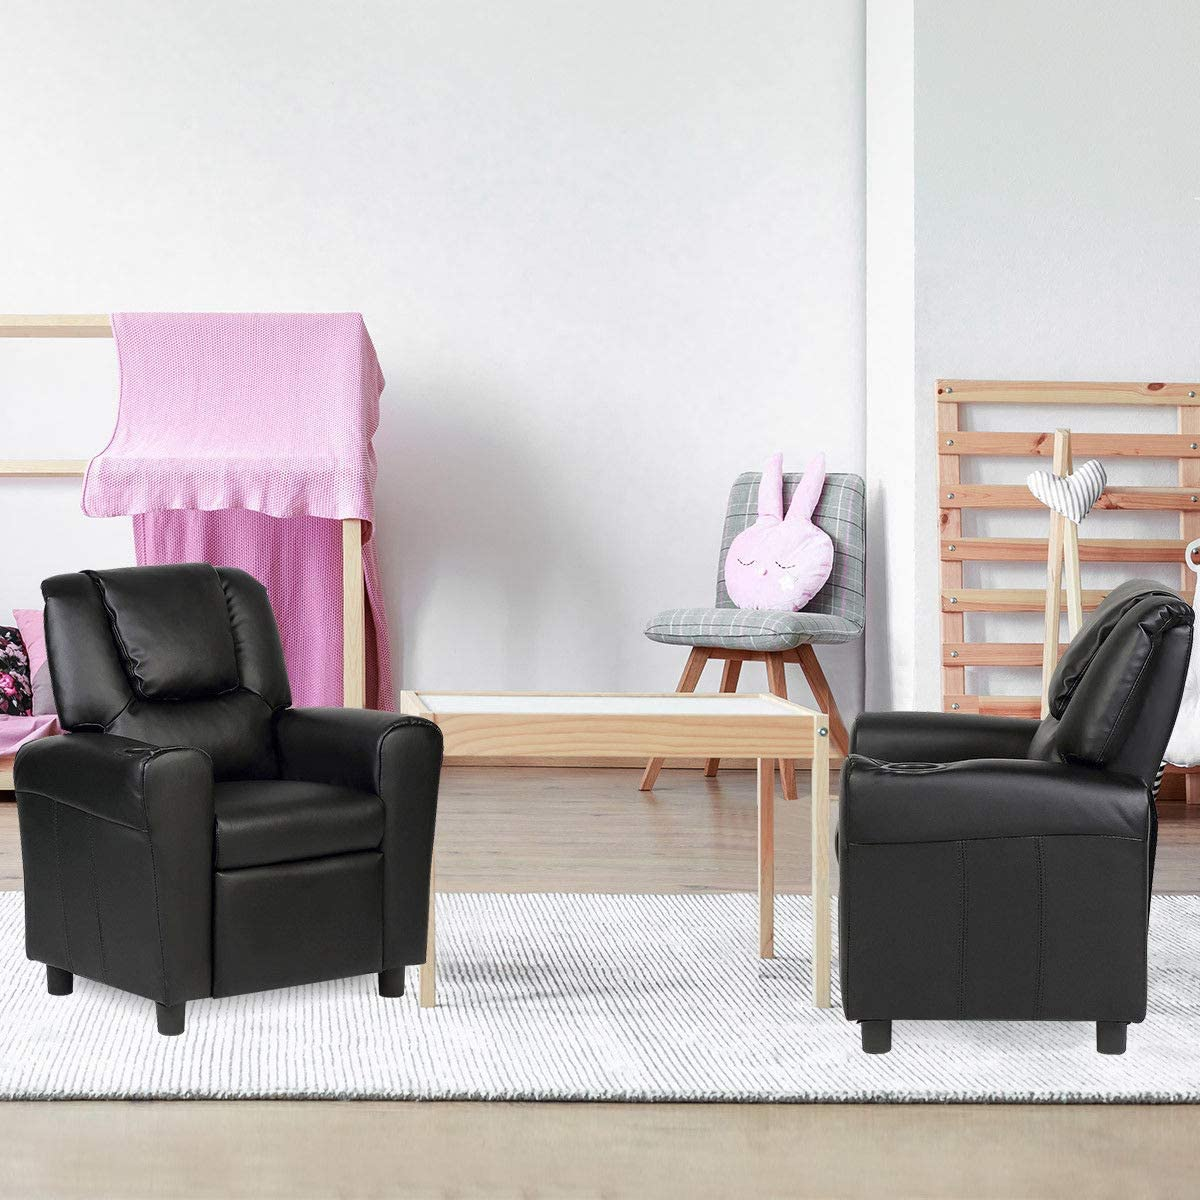 PU Leather Recliner Kids Couch Costzon Kids Recliner Chair with Cup Holder Toddler Furniture Children Armrest Sofa w//Headrest /& Footrest for Girls Boys Baby Bedroom Kids Room Black